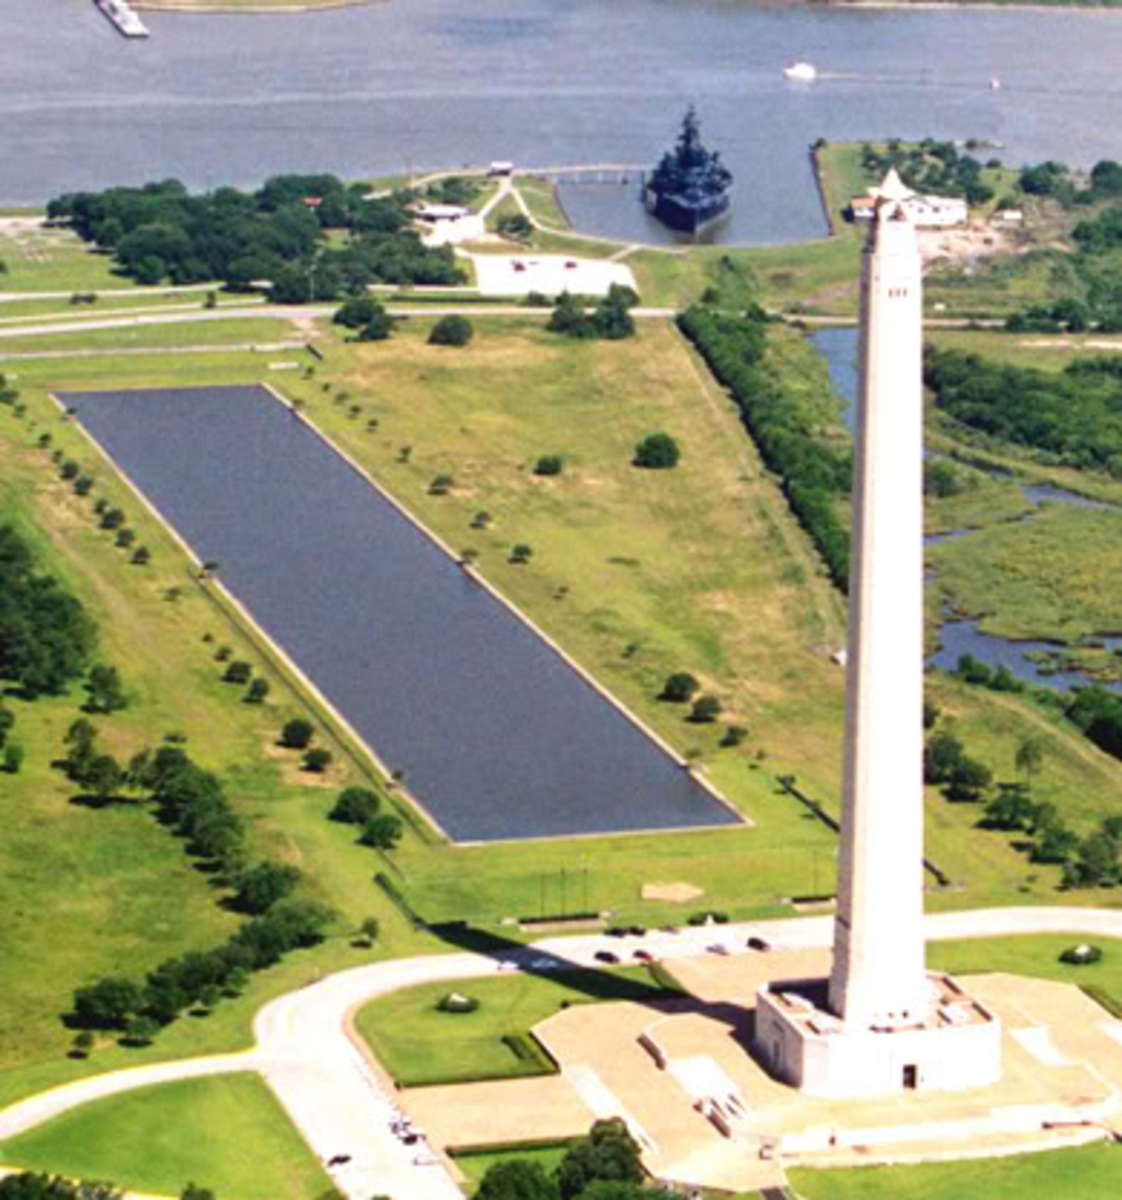 The San Jacinto Monument is a 570 foot high column topped with a 220 ton star that commemorates the site of the Battle of San Jacinto, the decisive battle of the Texas Revolution.